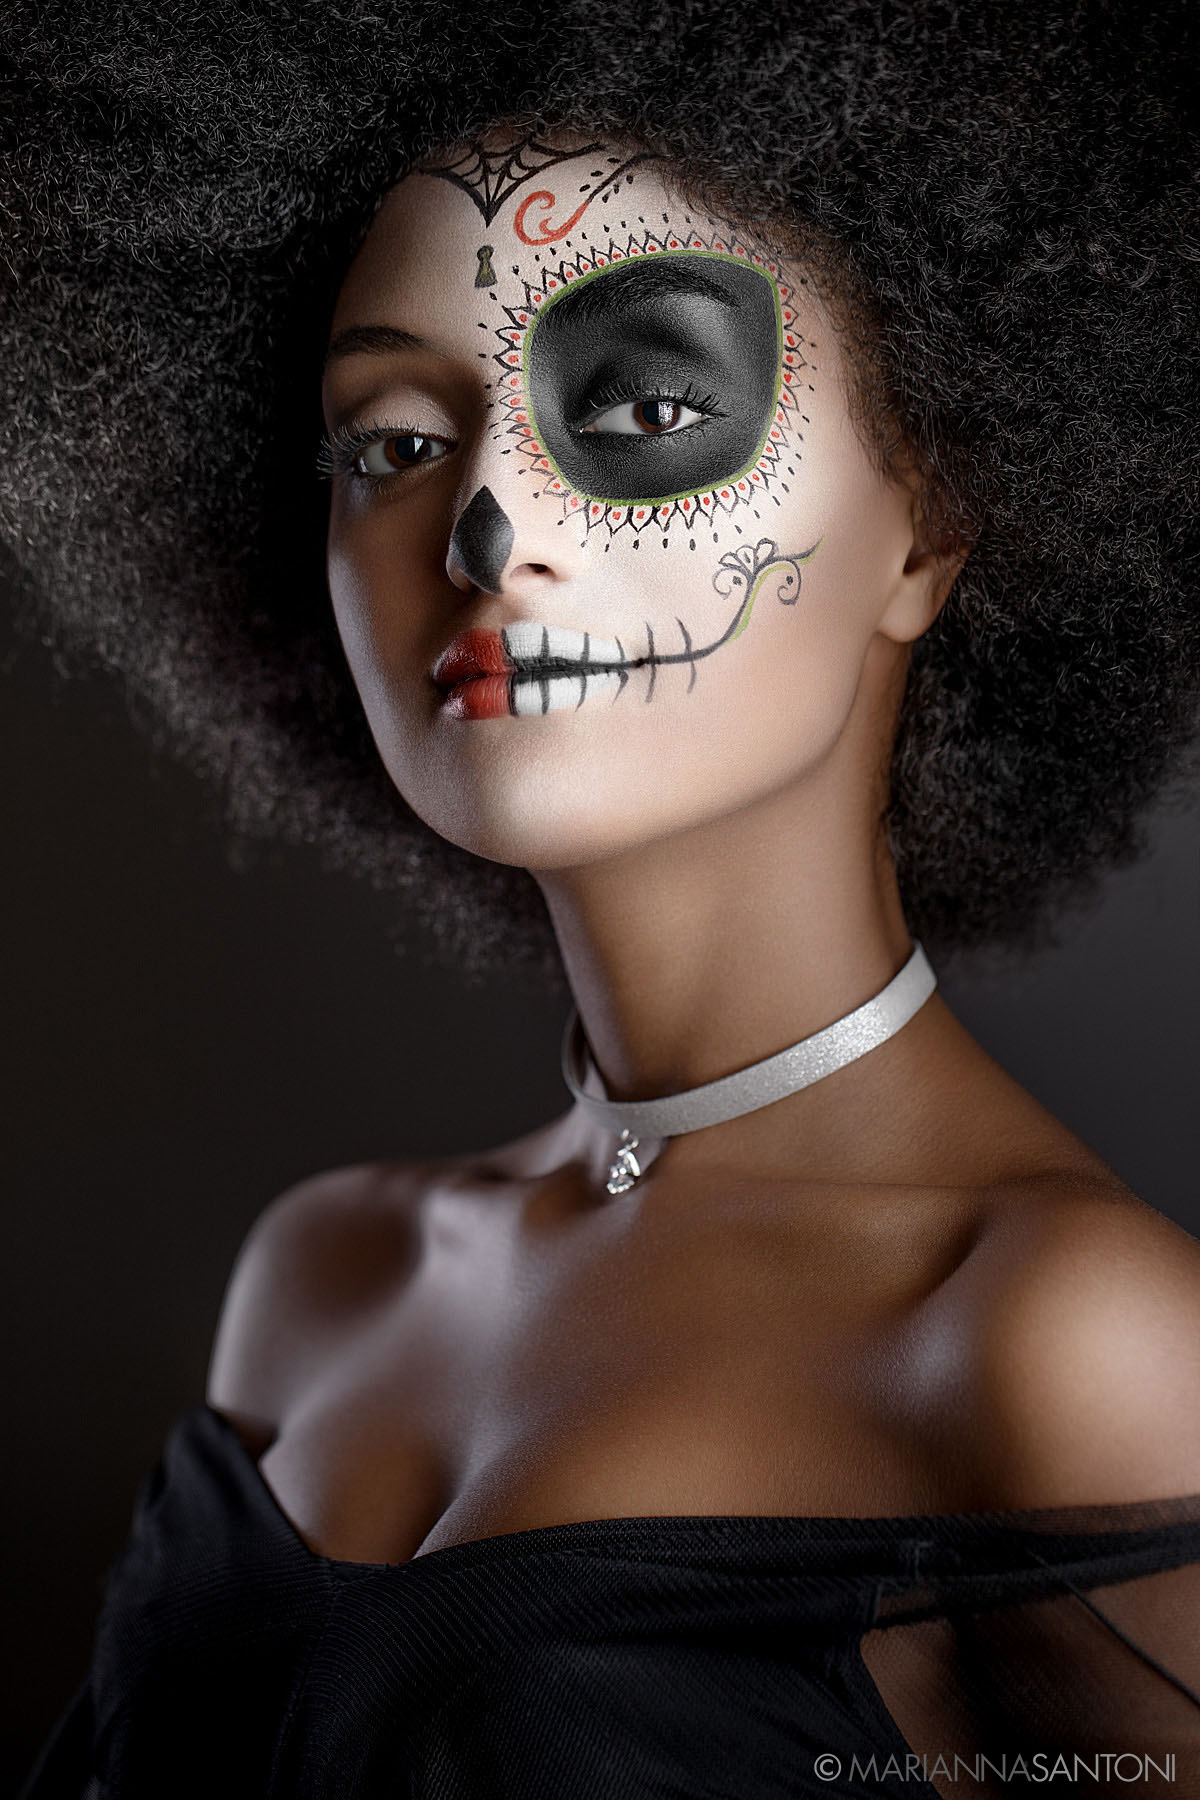 beauty shot with halloween make-up by photographer marianna santoni